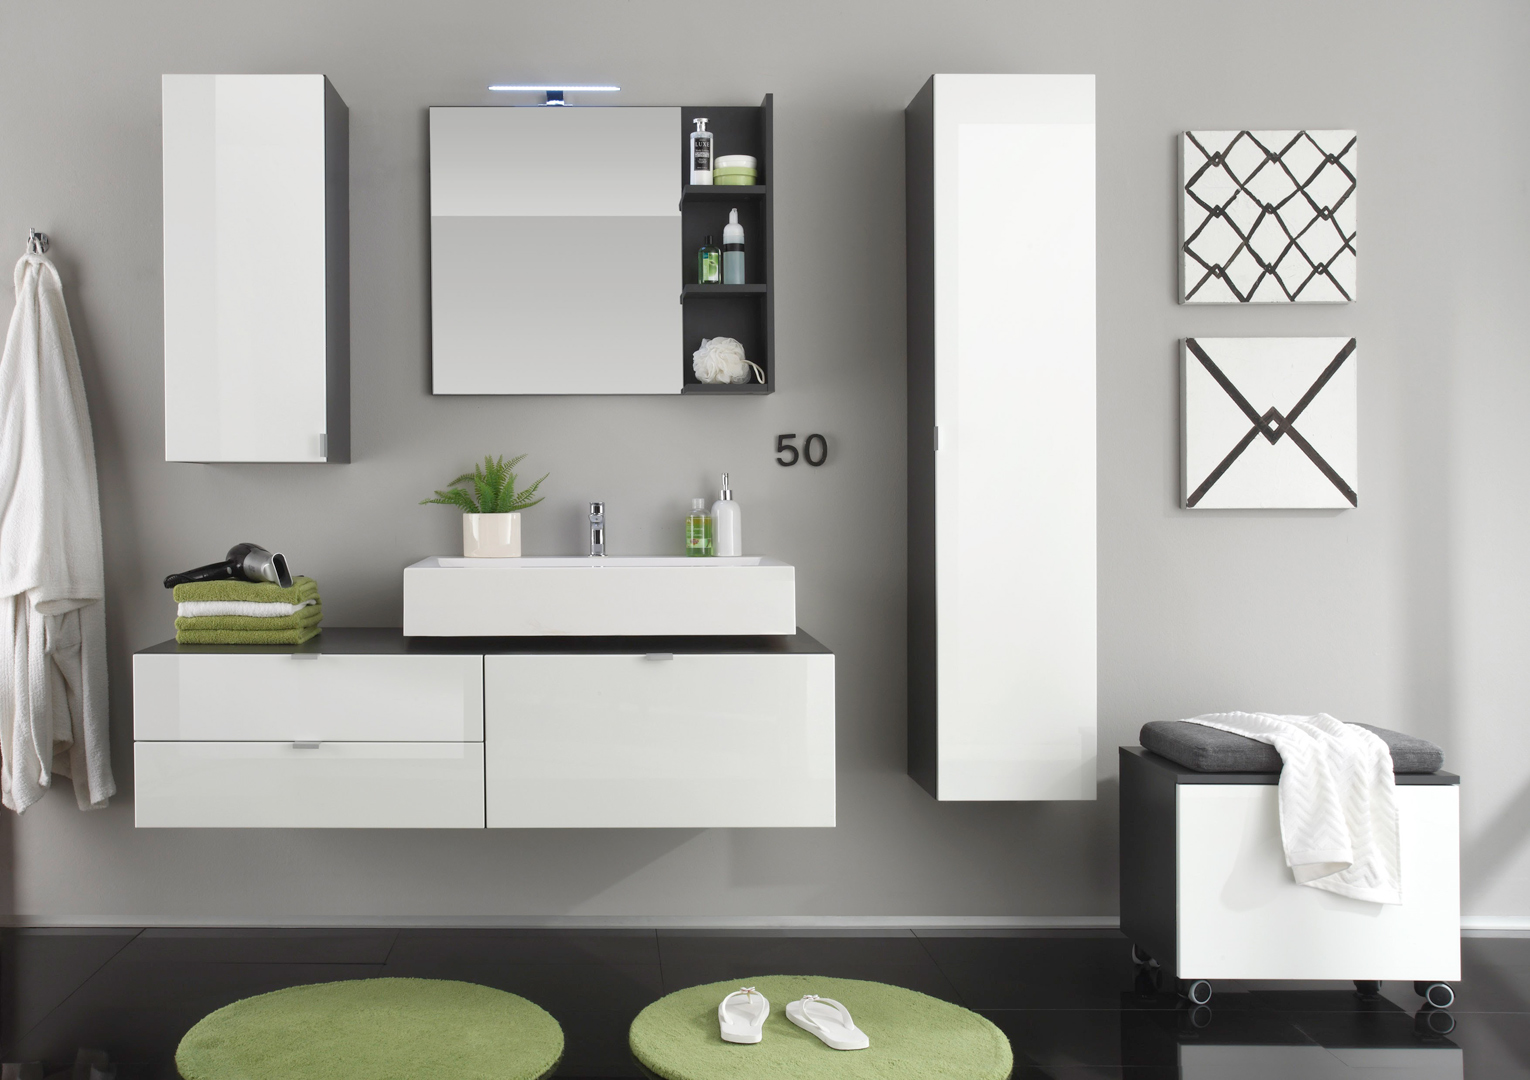 meuble haut de salle de bain design gris blanc laqu. Black Bedroom Furniture Sets. Home Design Ideas